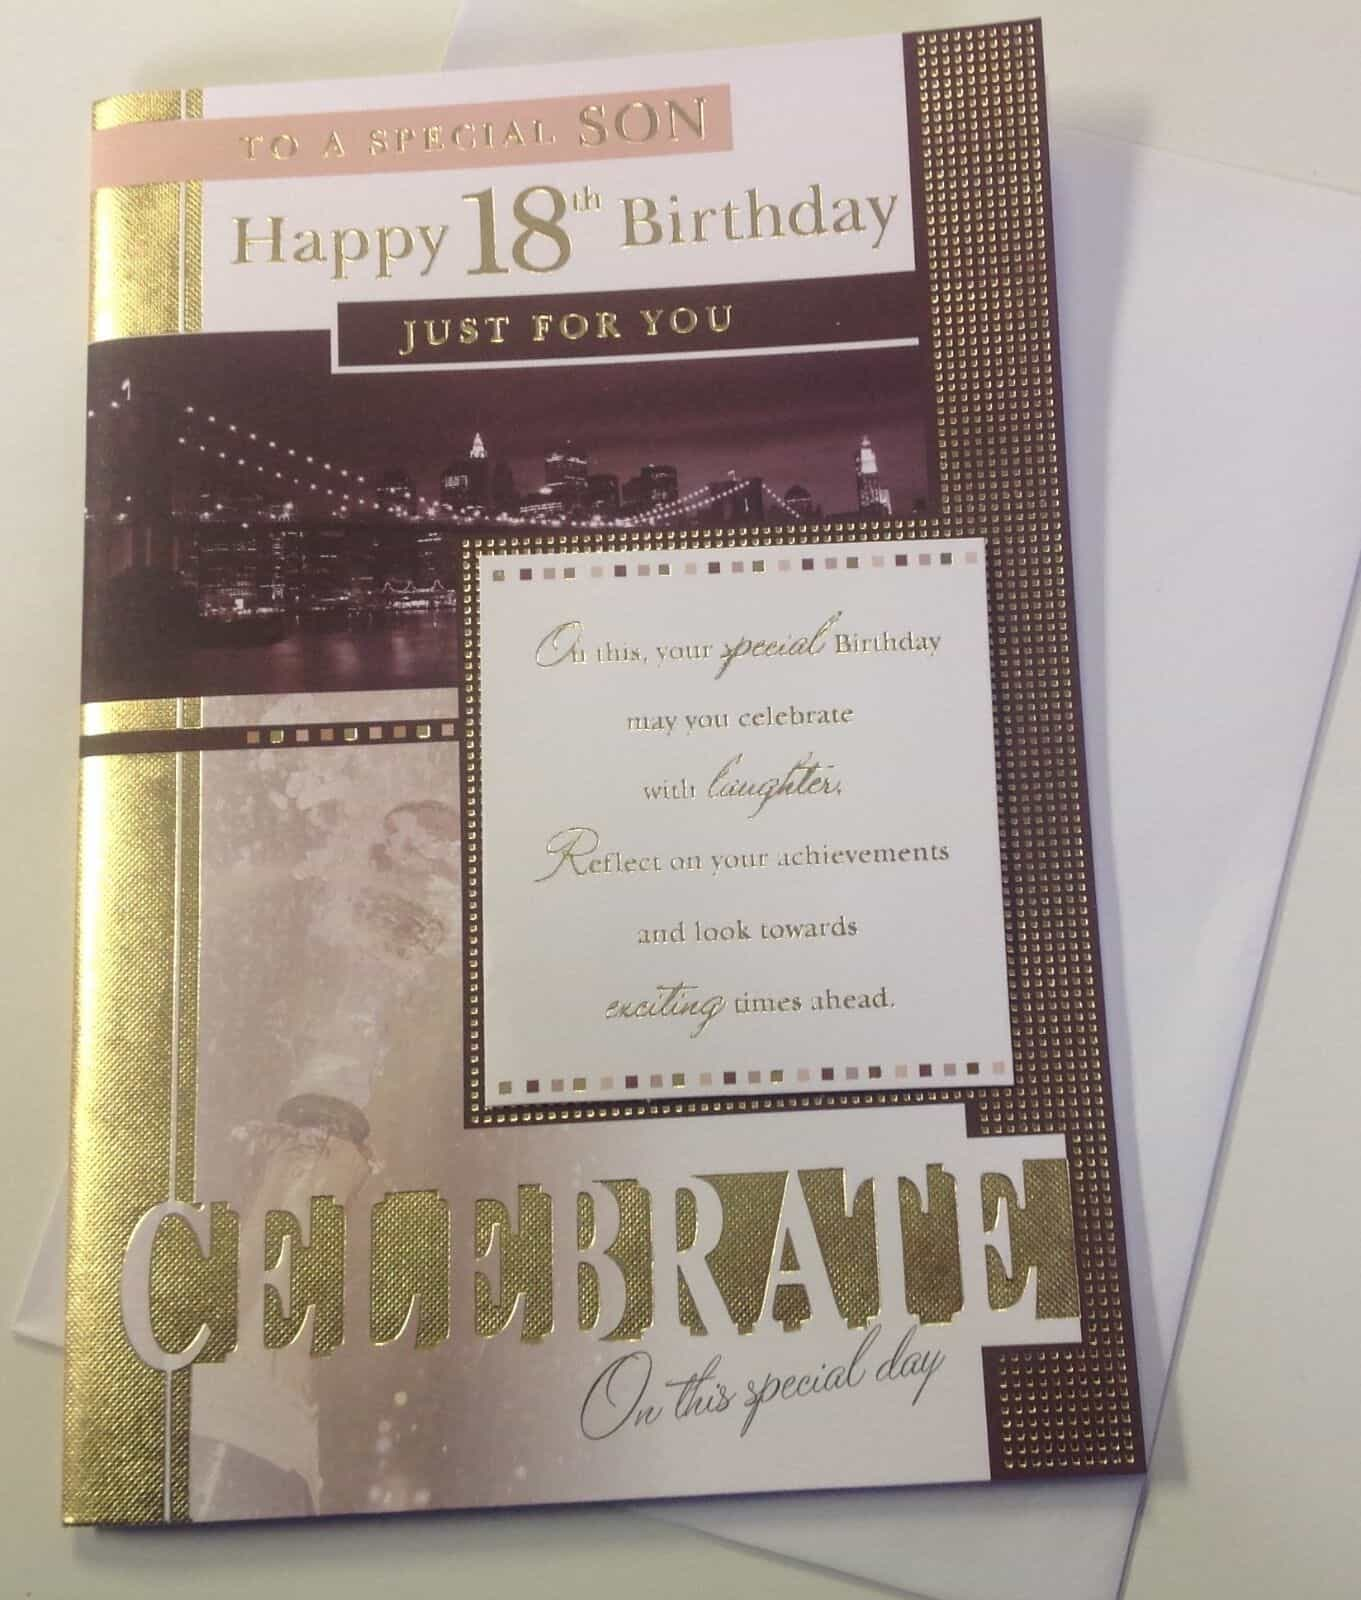 Son 18th Birthday Card With Gold Lettering 282392793604